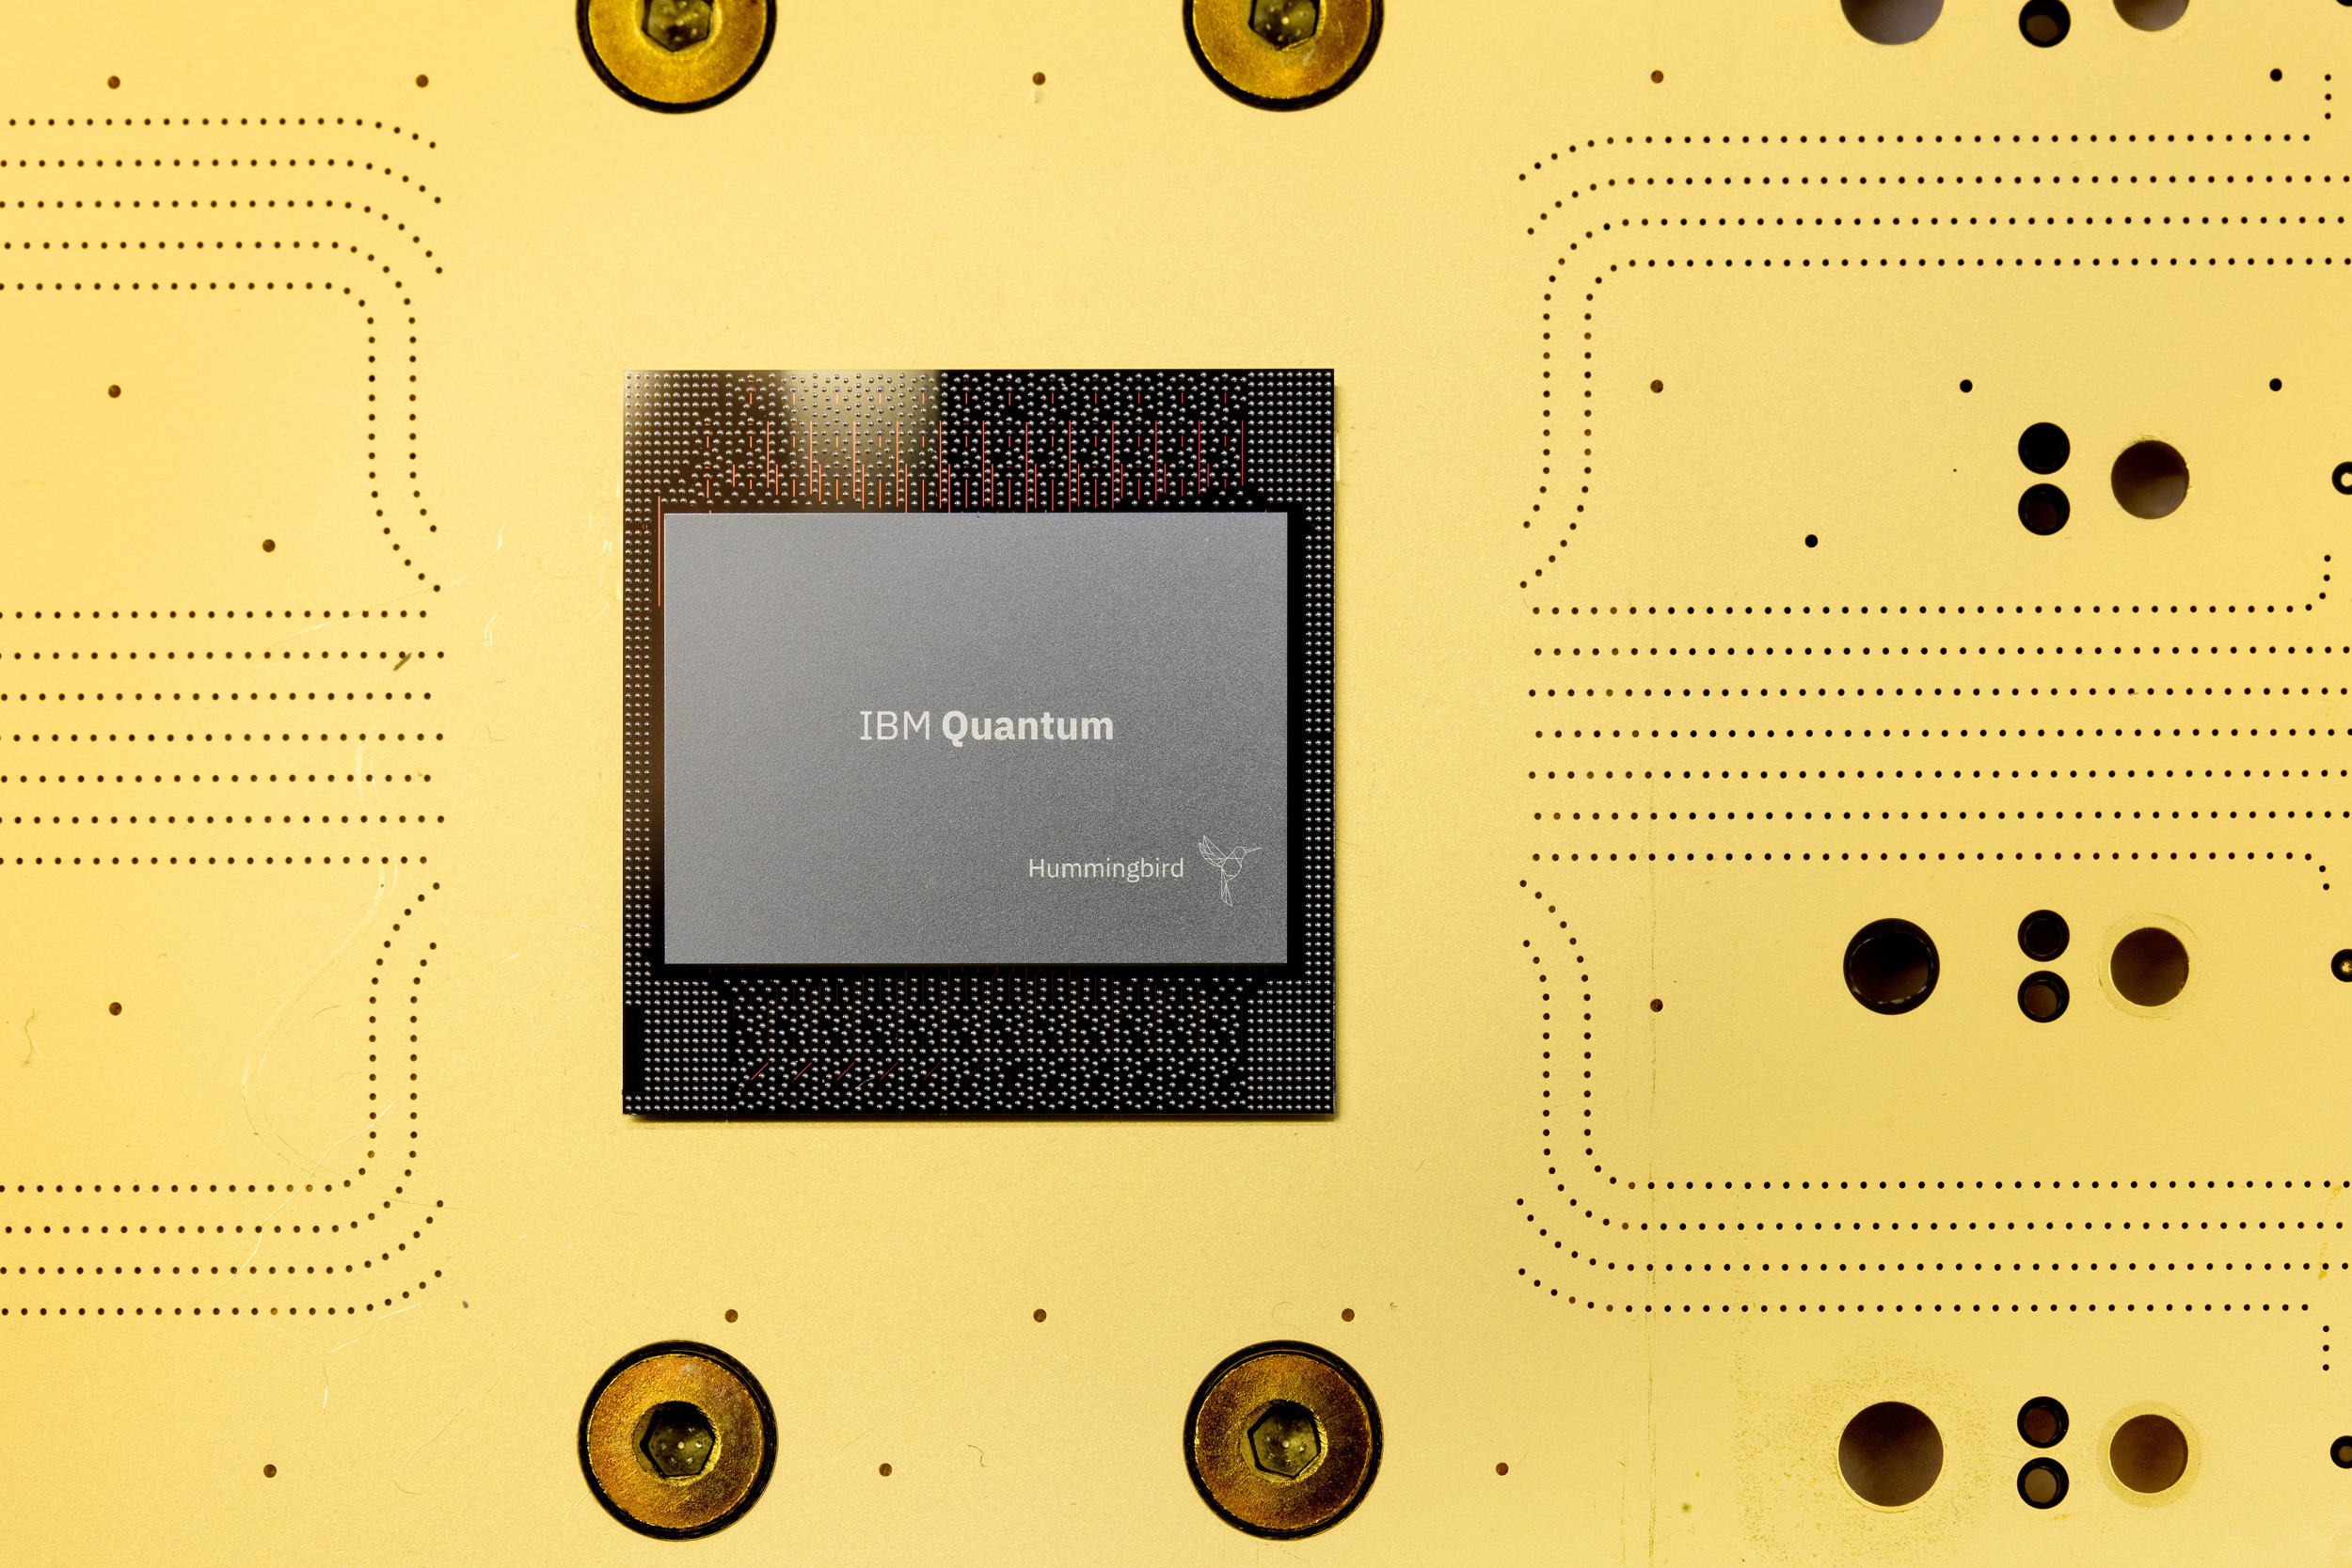 3 Things to Know About IBM's Development Roadmap to Build an Open Quantum Software Ecosystem - Image 2